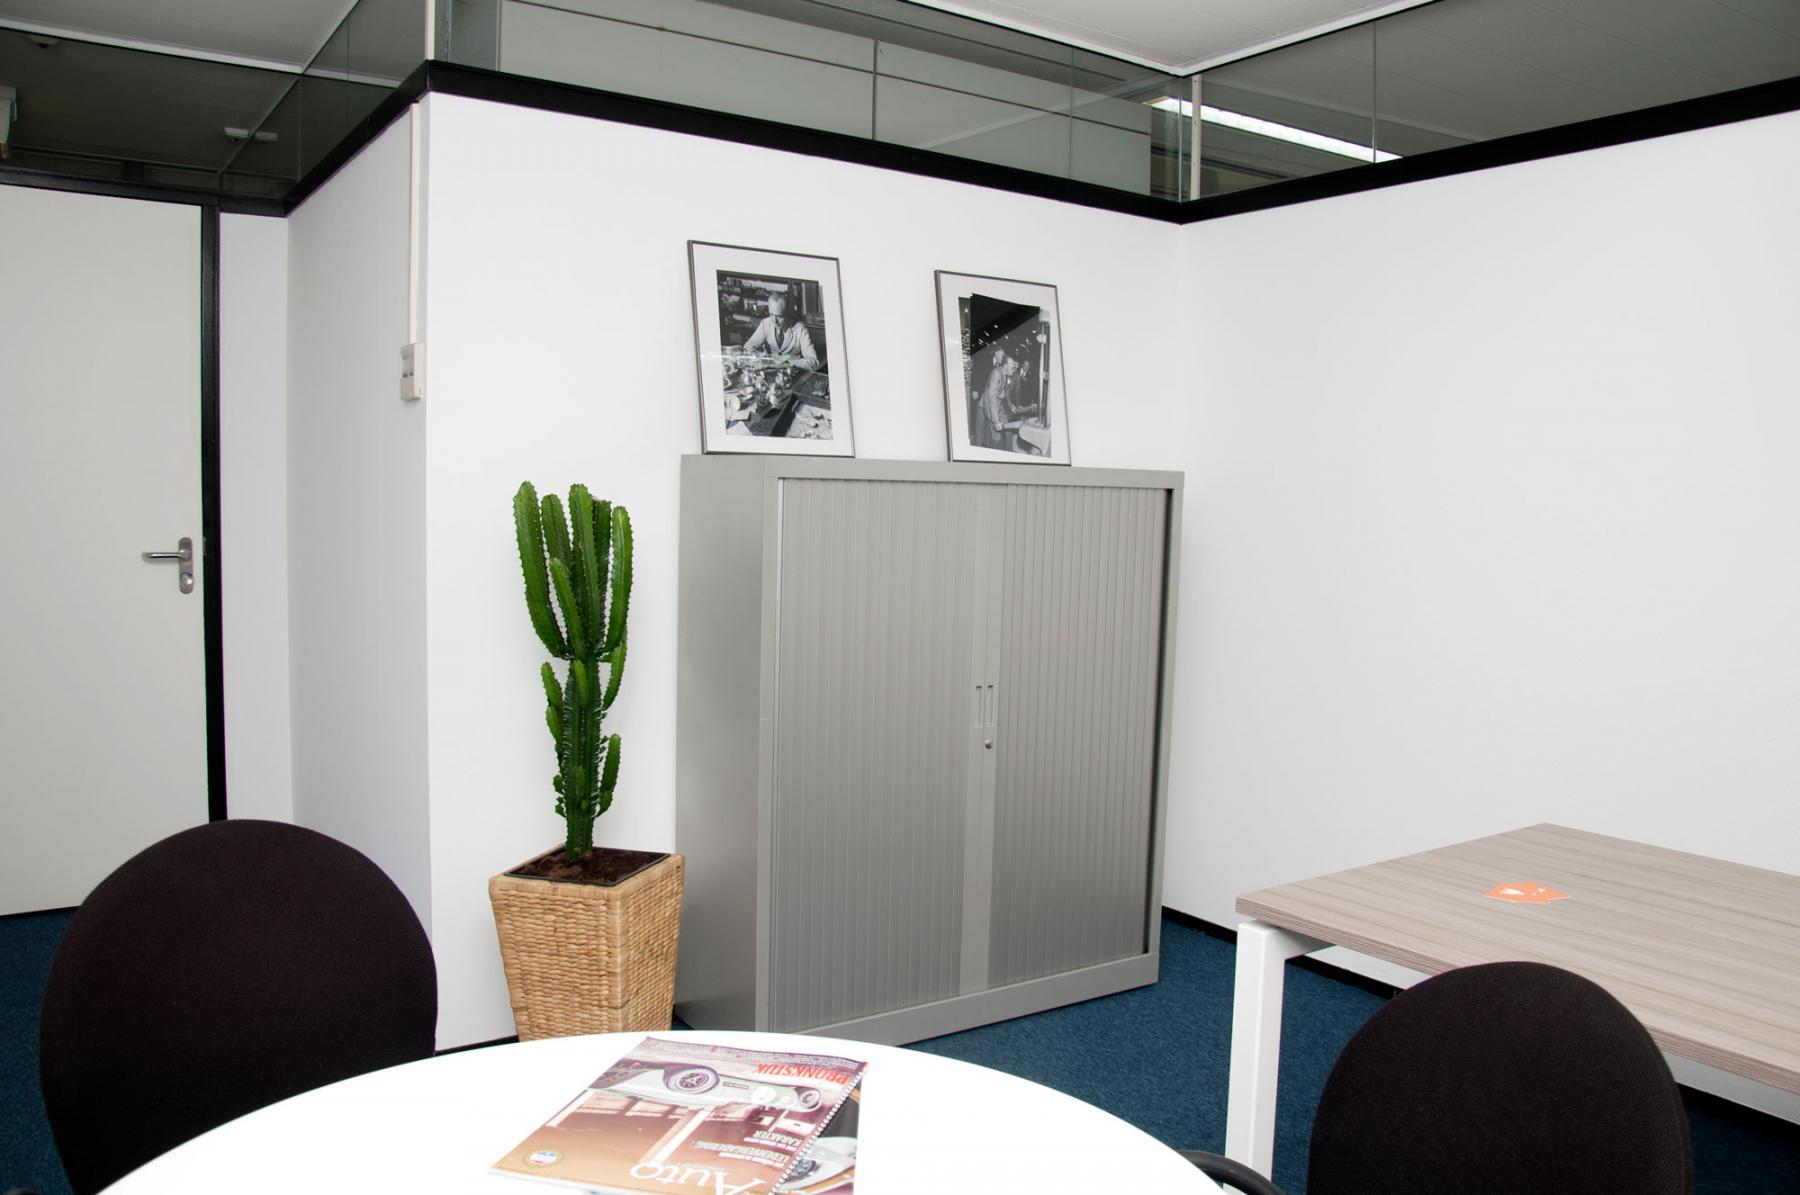 Office space with a closet against the wall